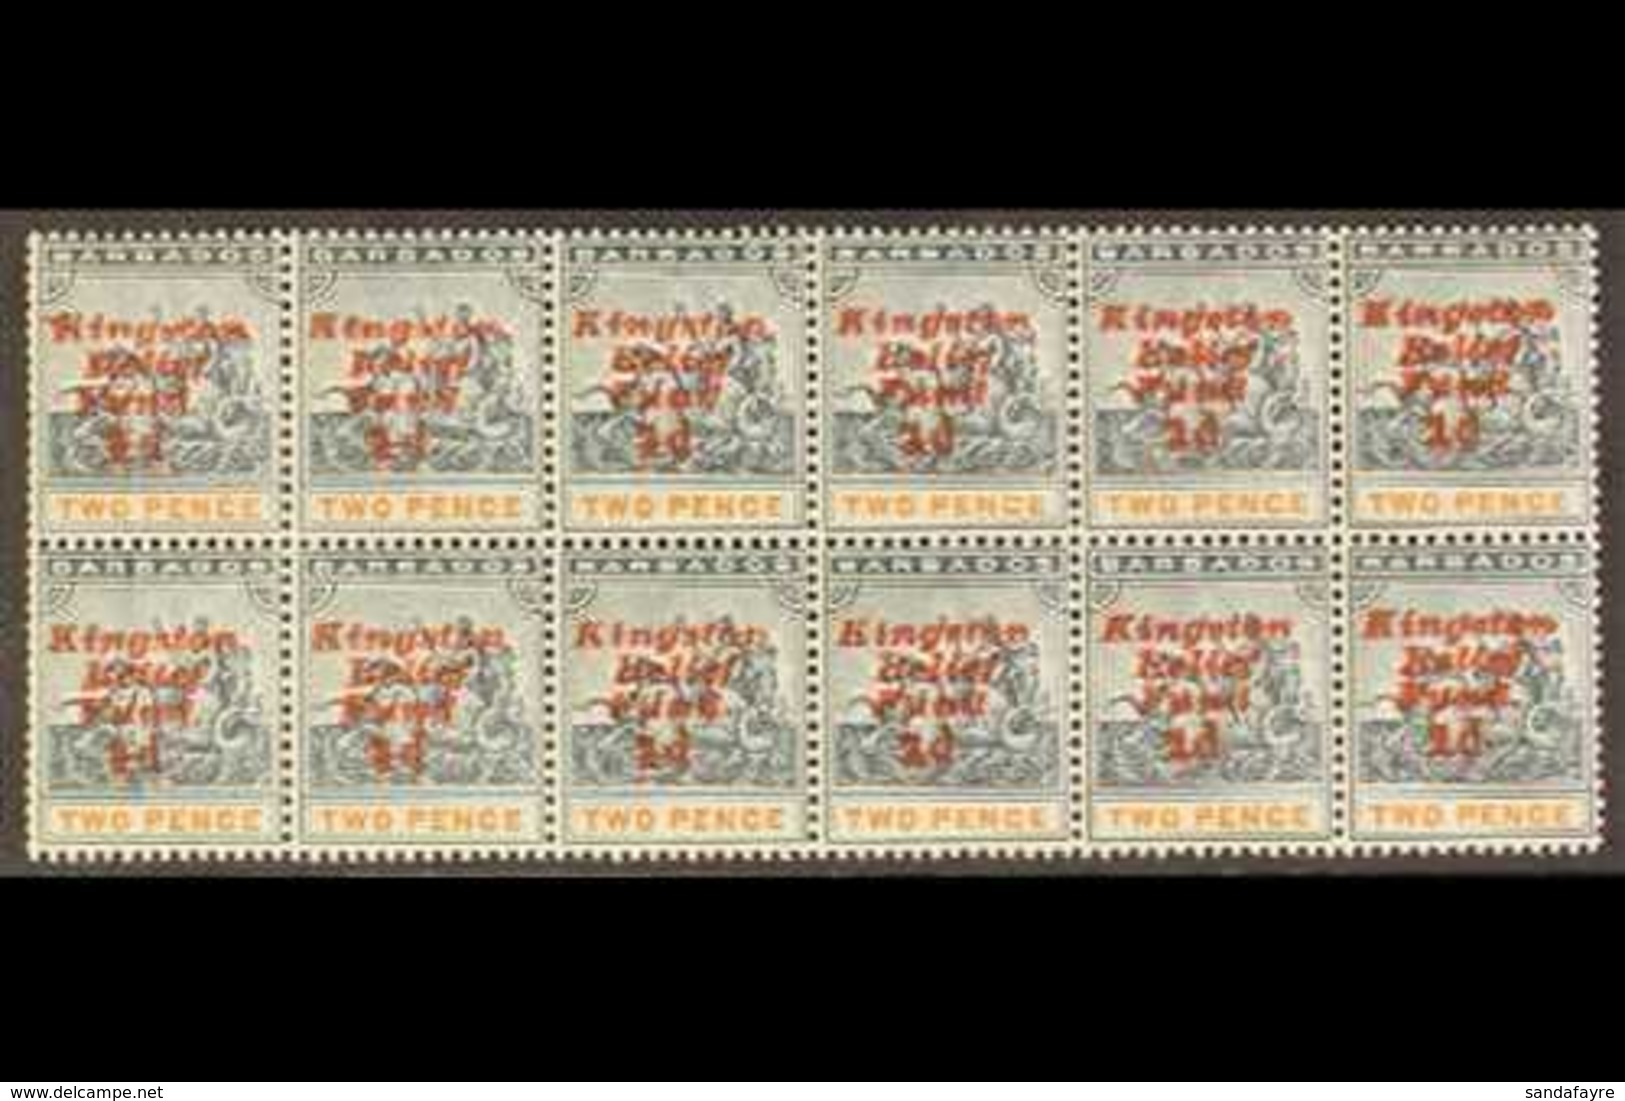 1907 MULTIPLE WITH VARIETIES KINGSTON RELIEF FUND, PART PANE Of 12 Stamps - Fifth Setting, Ovpt Upright, With Missing St - Barbades (...-1966)